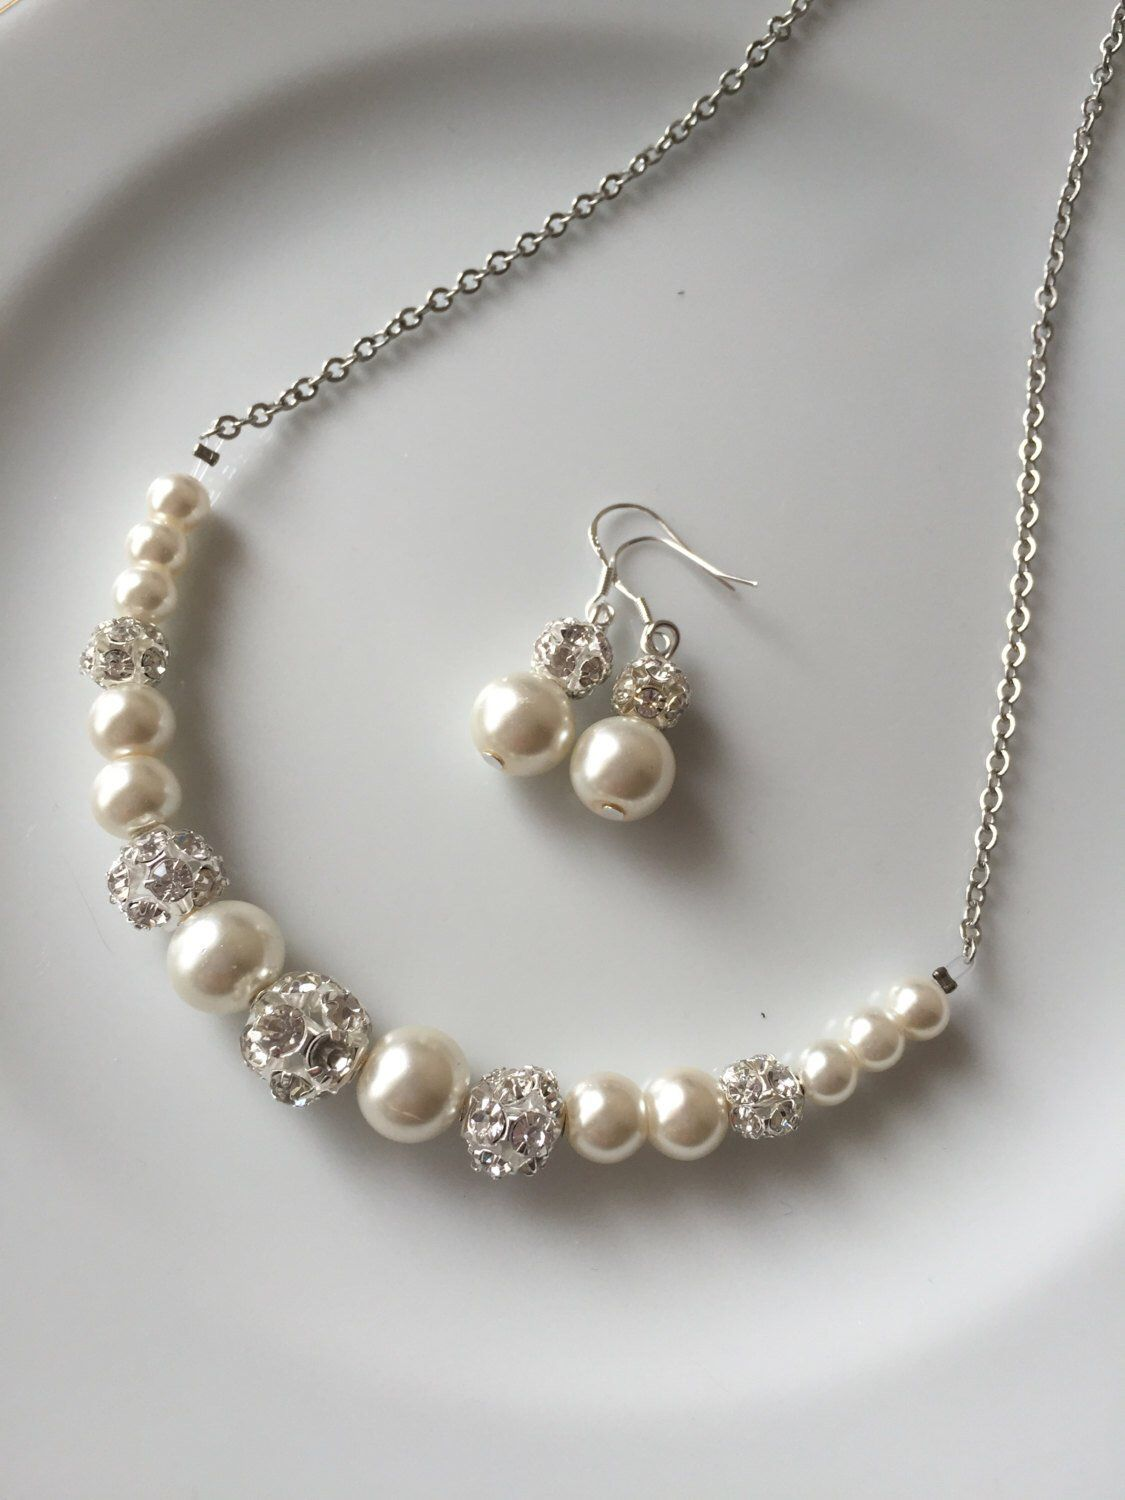 Ivory pearl jewelry,  ivory pearl necklace, wedding jewelry for brides, wedding jewelry set, wedding jewelry for bridesmaids, bridal #pearljewelry